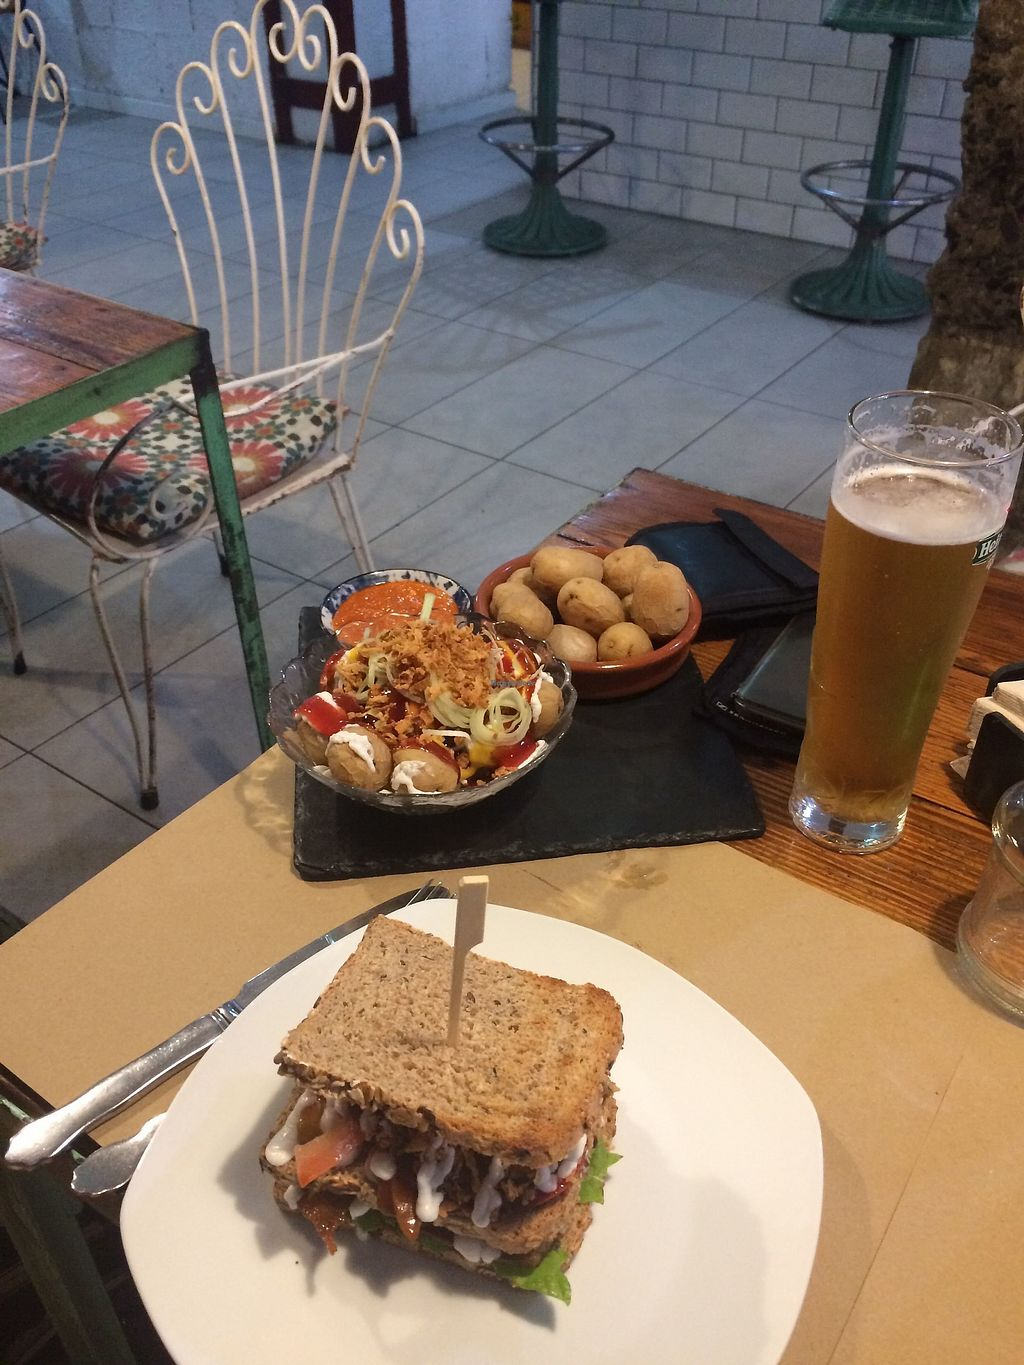 """Photo of Bioloco  by <a href=""""/members/profile/AbiM"""">AbiM</a> <br/>mojo potatotes, other potatoes, club sandwich burger <br/> March 11, 2018  - <a href='/contact/abuse/image/76580/369349'>Report</a>"""